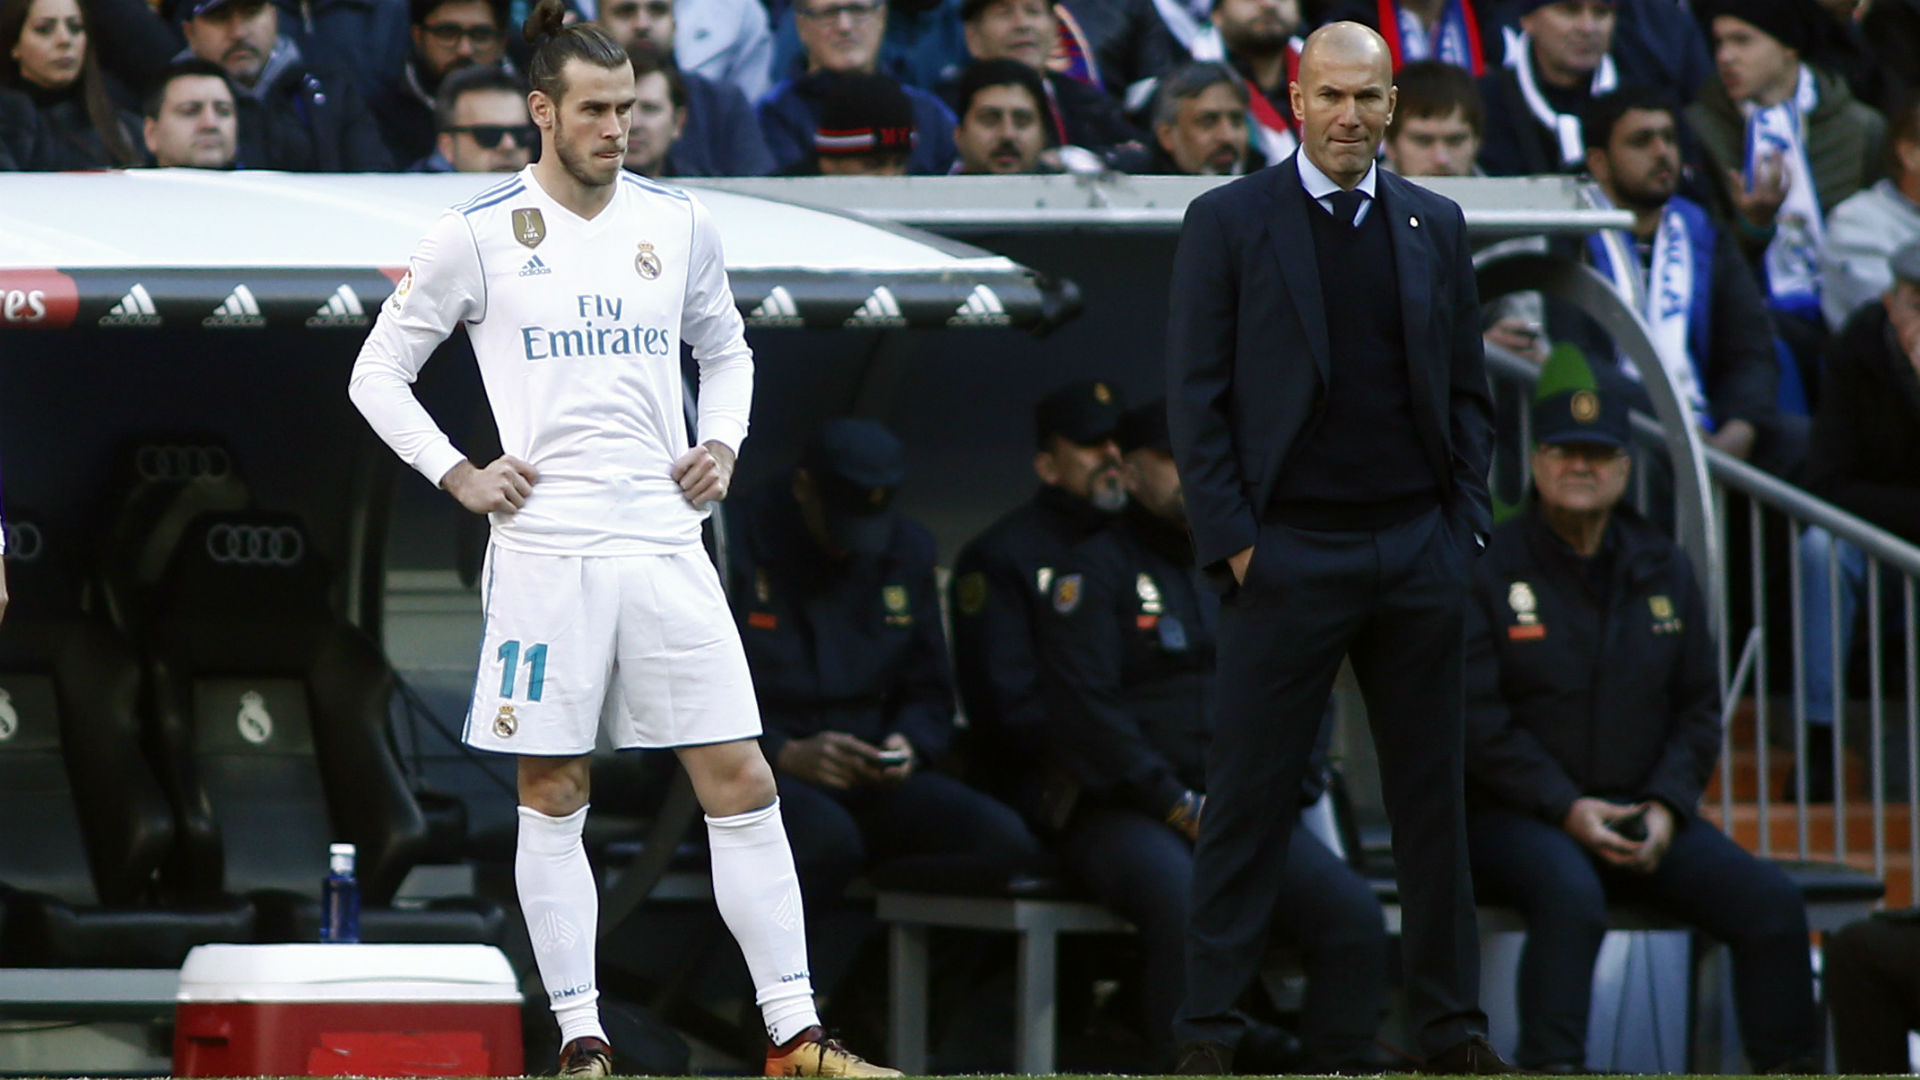 Zidane claims Bale 'didn't want to play' as Real Madrid transfer drama continues